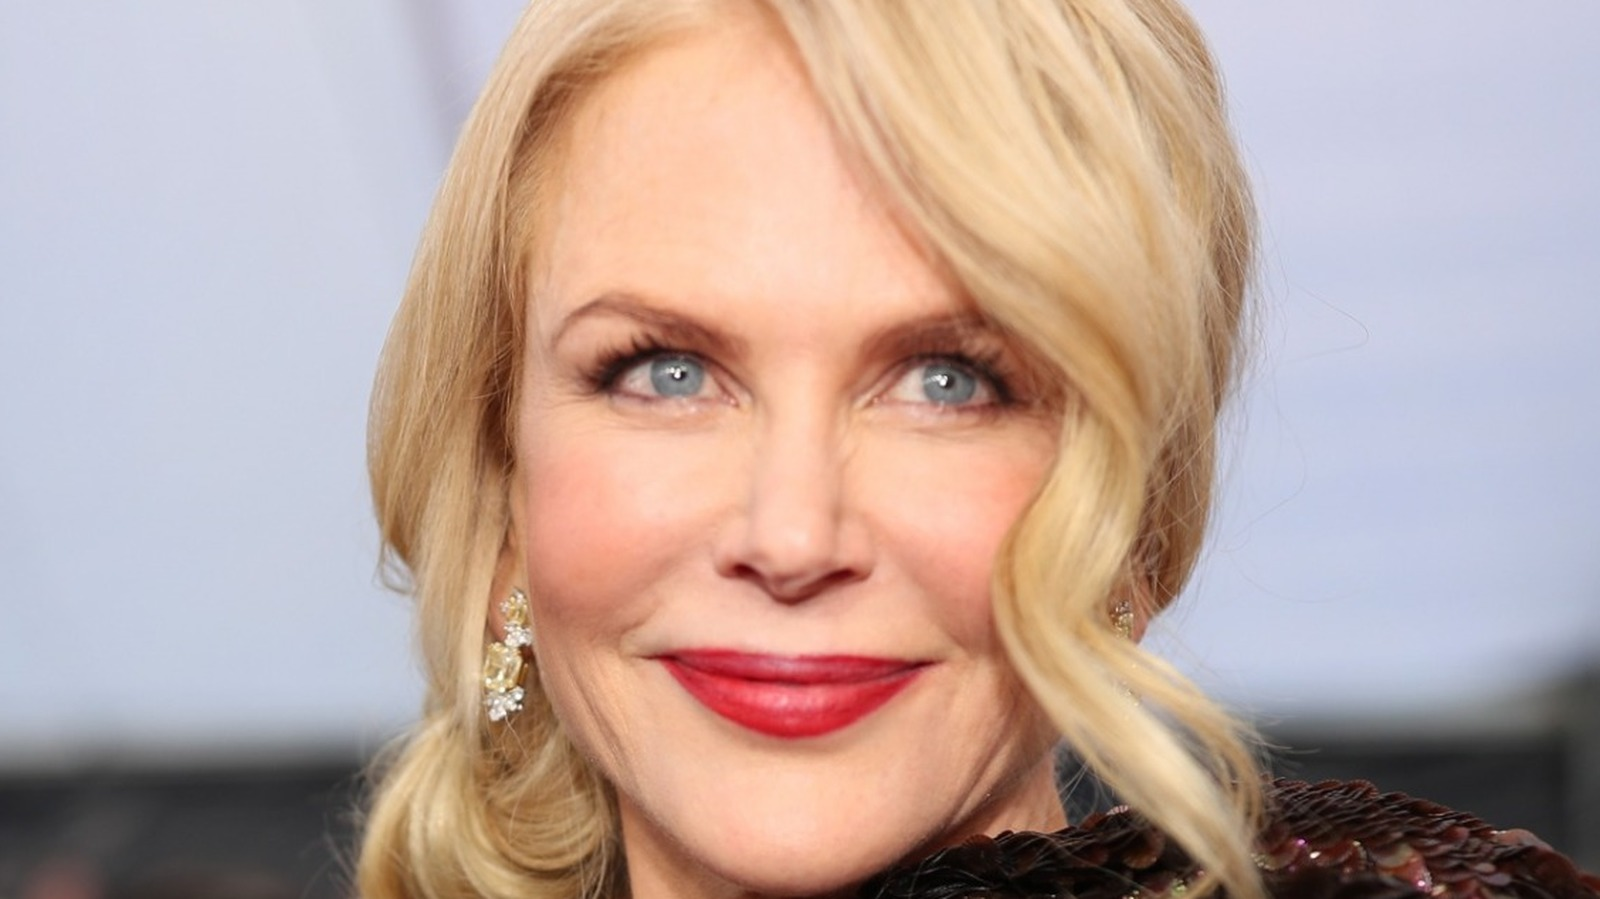 Nicole Kidman Shows Off Her Family At The Golden Globes.jpg